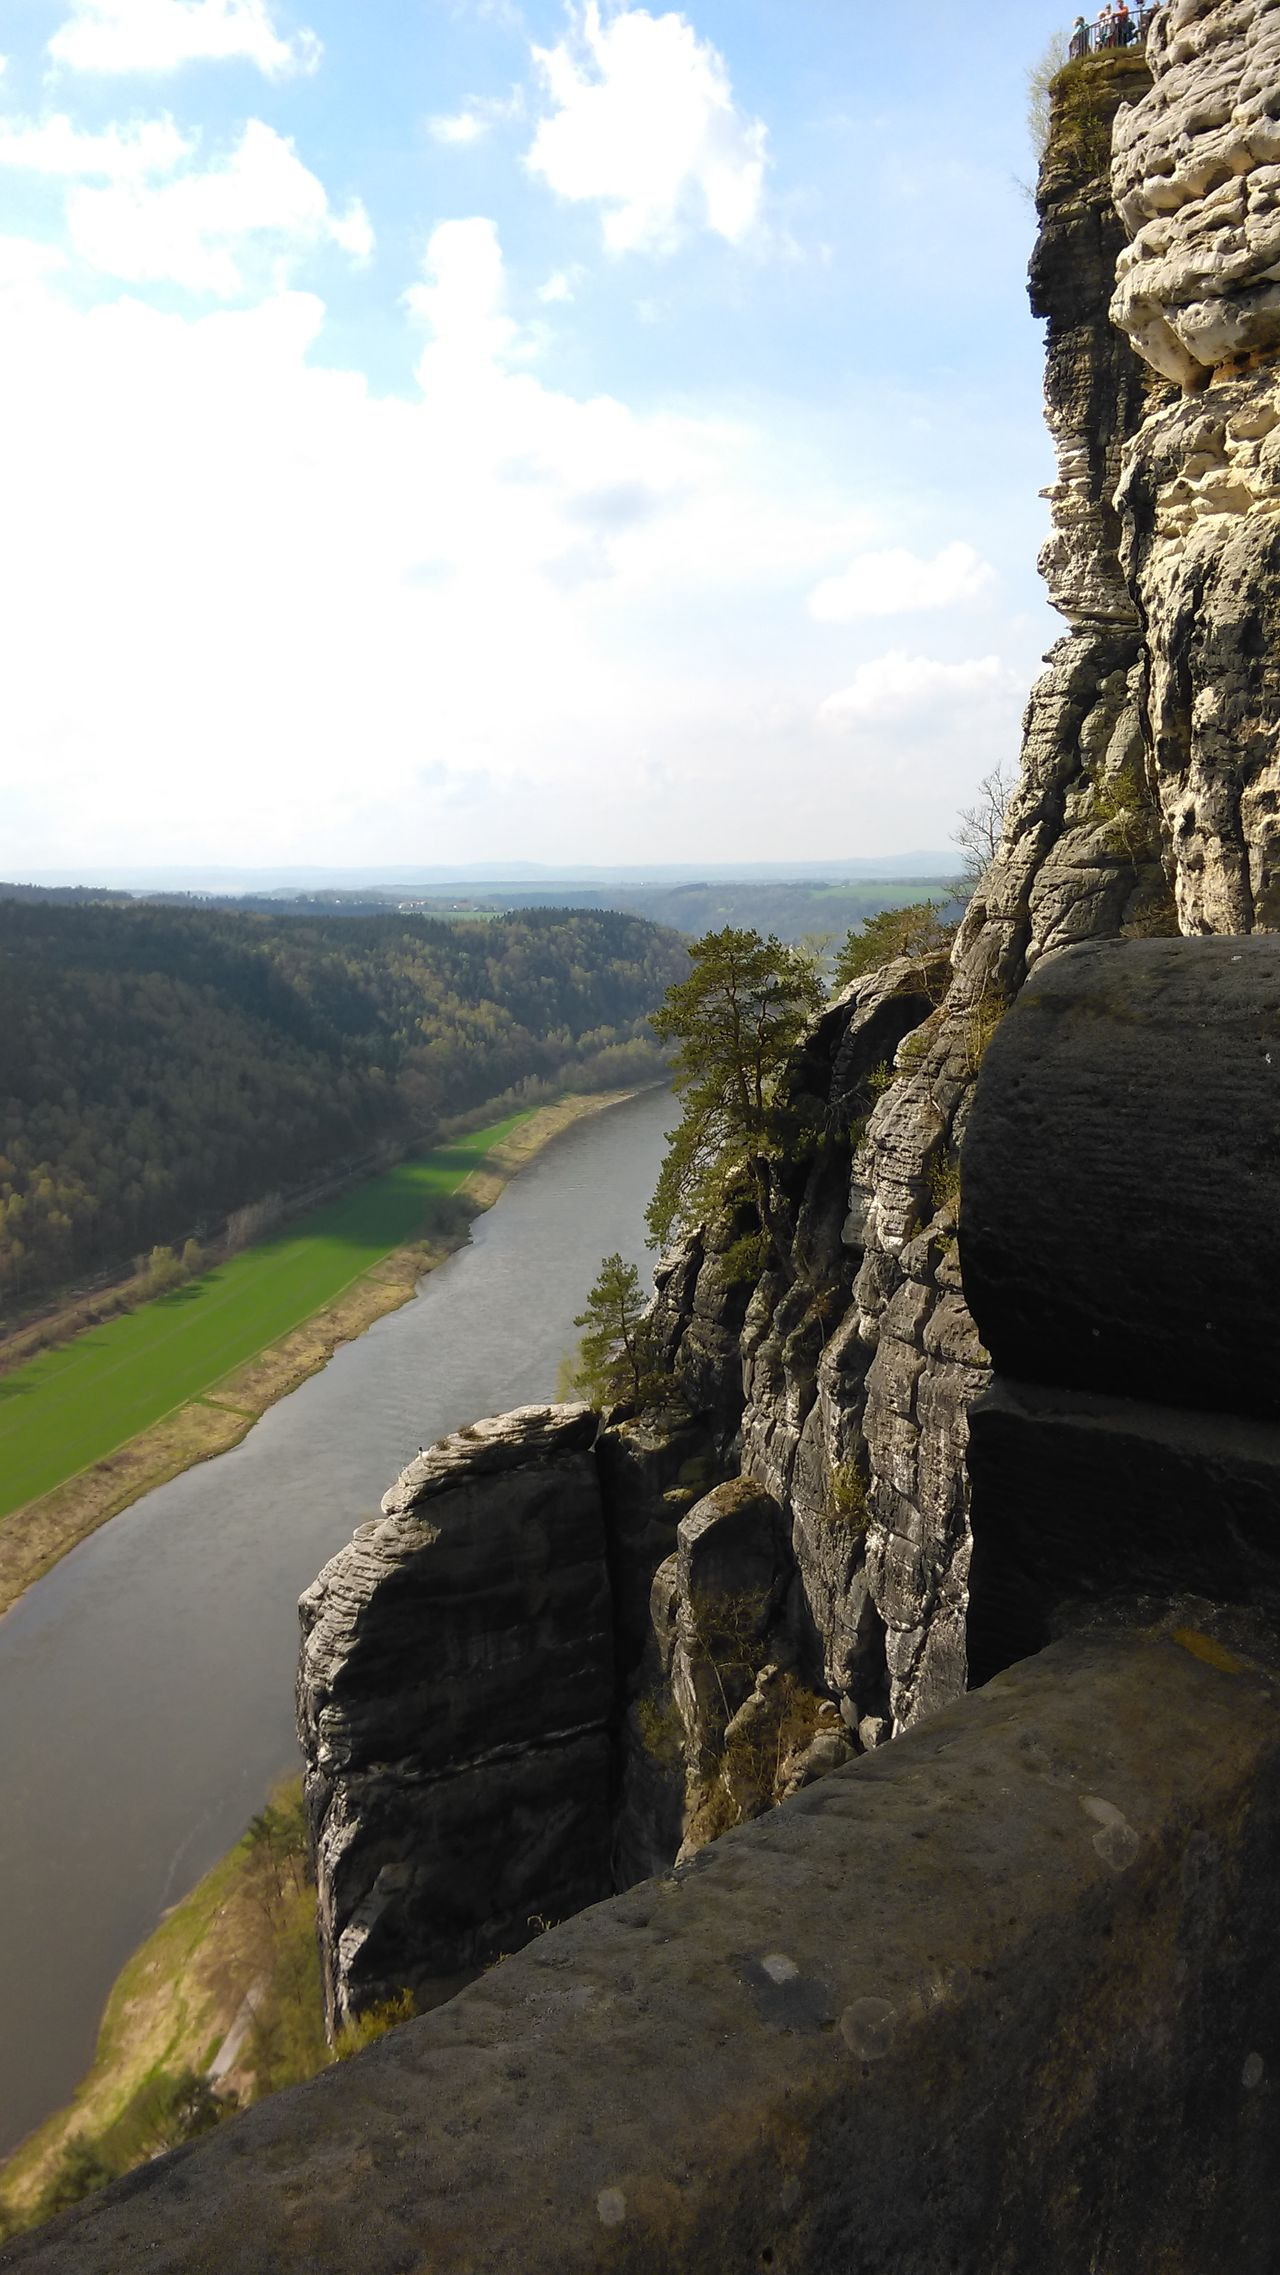 NoEditNoFilter Elbsandsteingebirge Traveling Tadaa Community Sächsische Schweiz Showcase April Sachsen Rathen Bastei EyeEm Elbe Spring Basteibrücke Bastei Bridge,